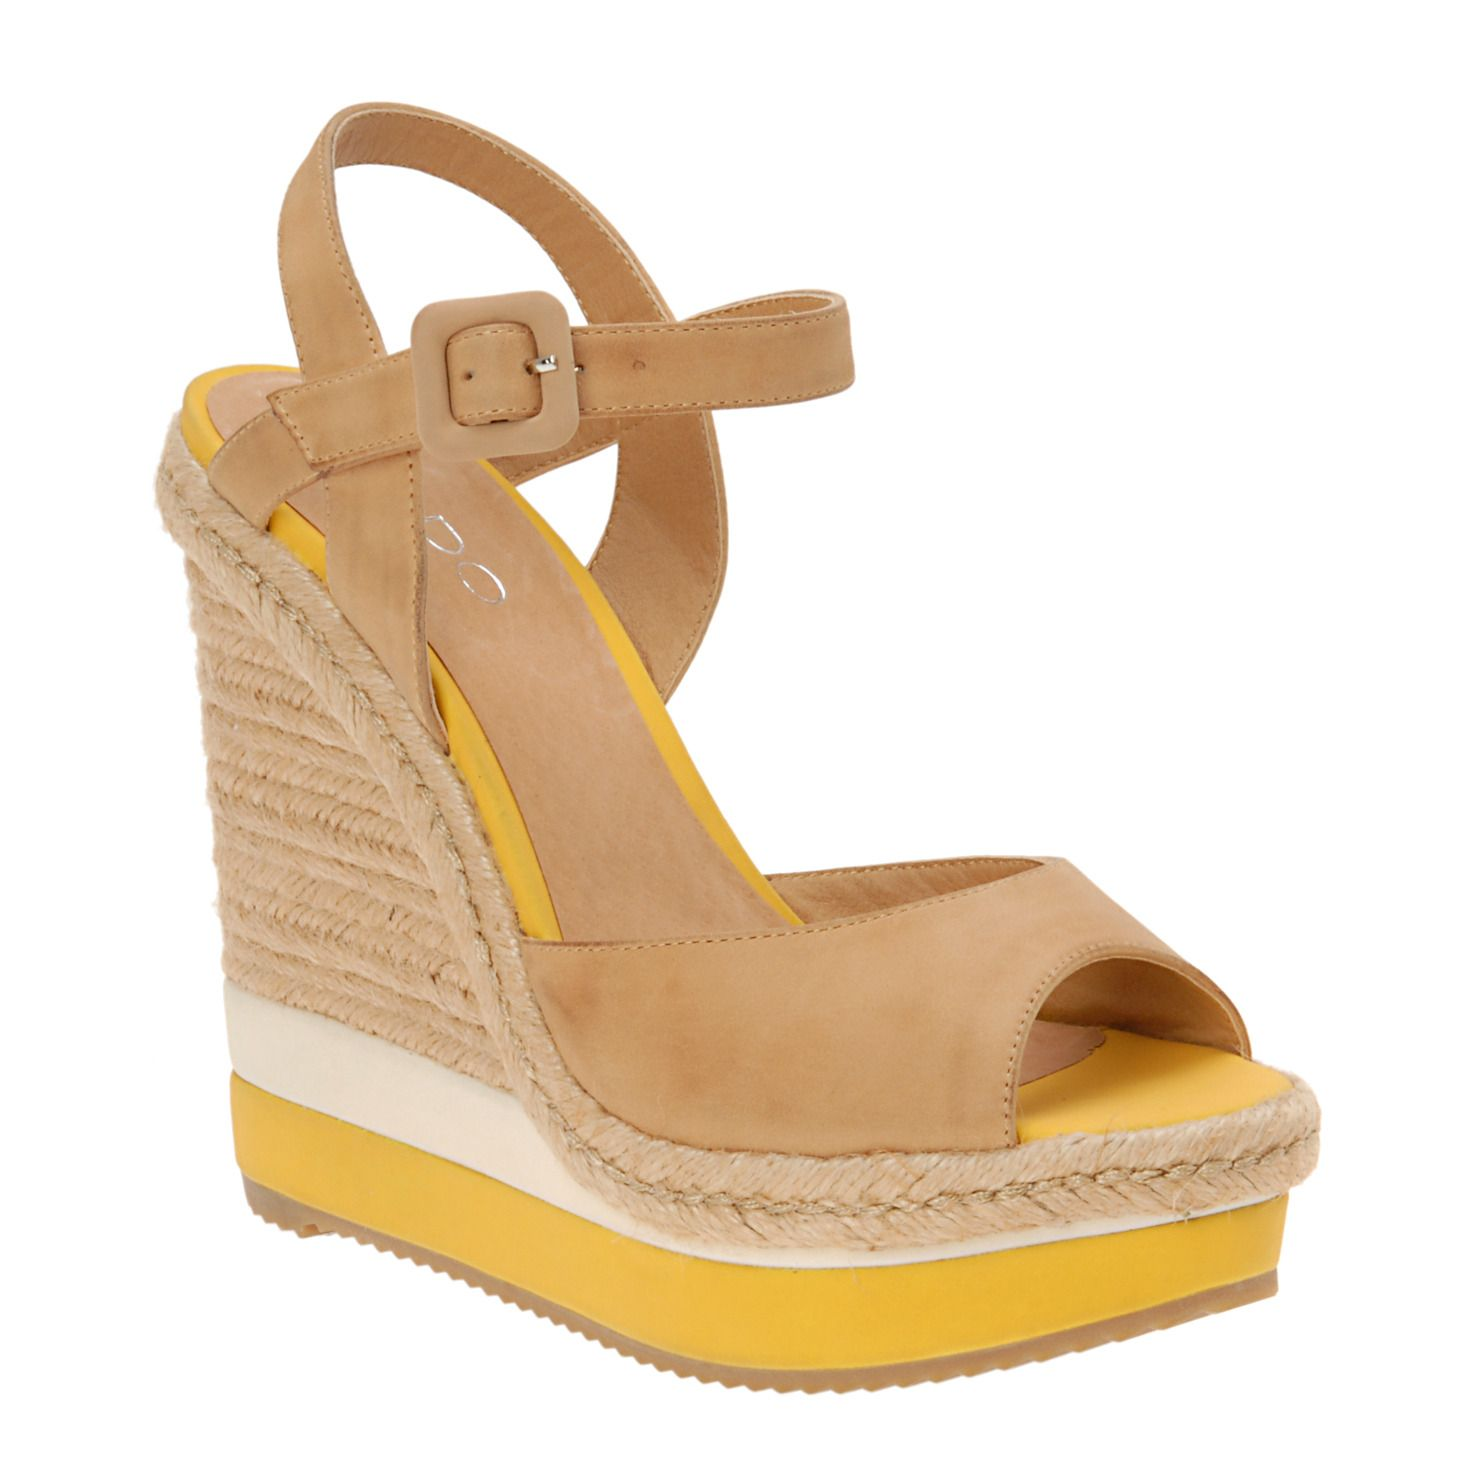 d19a452368a7 LOVE these nude yellow wedges for spring summer Aldo Shoes